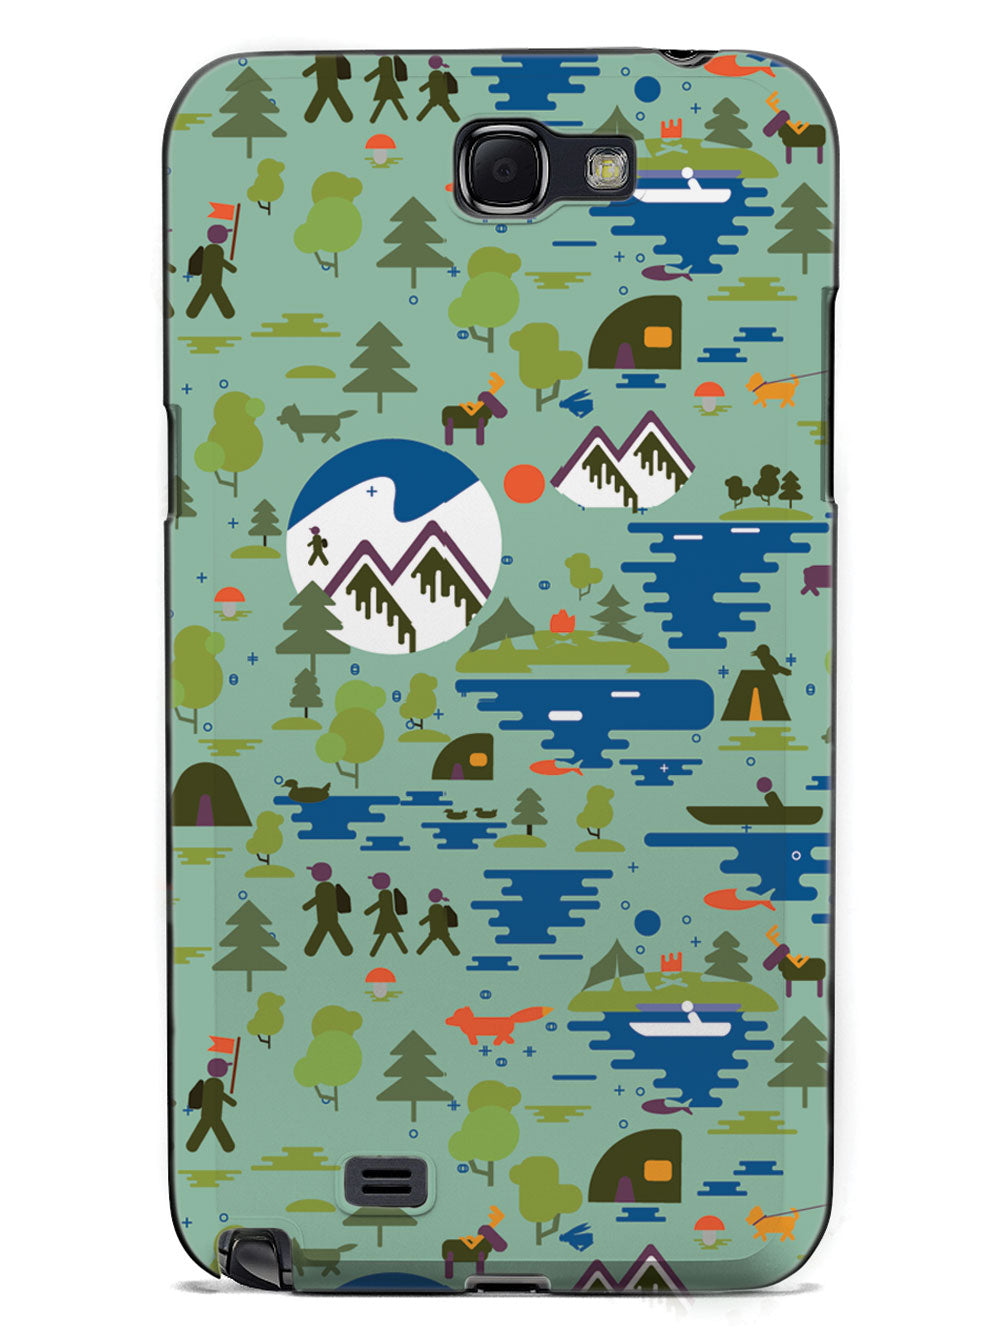 Camping Nature Pattern - Black Case